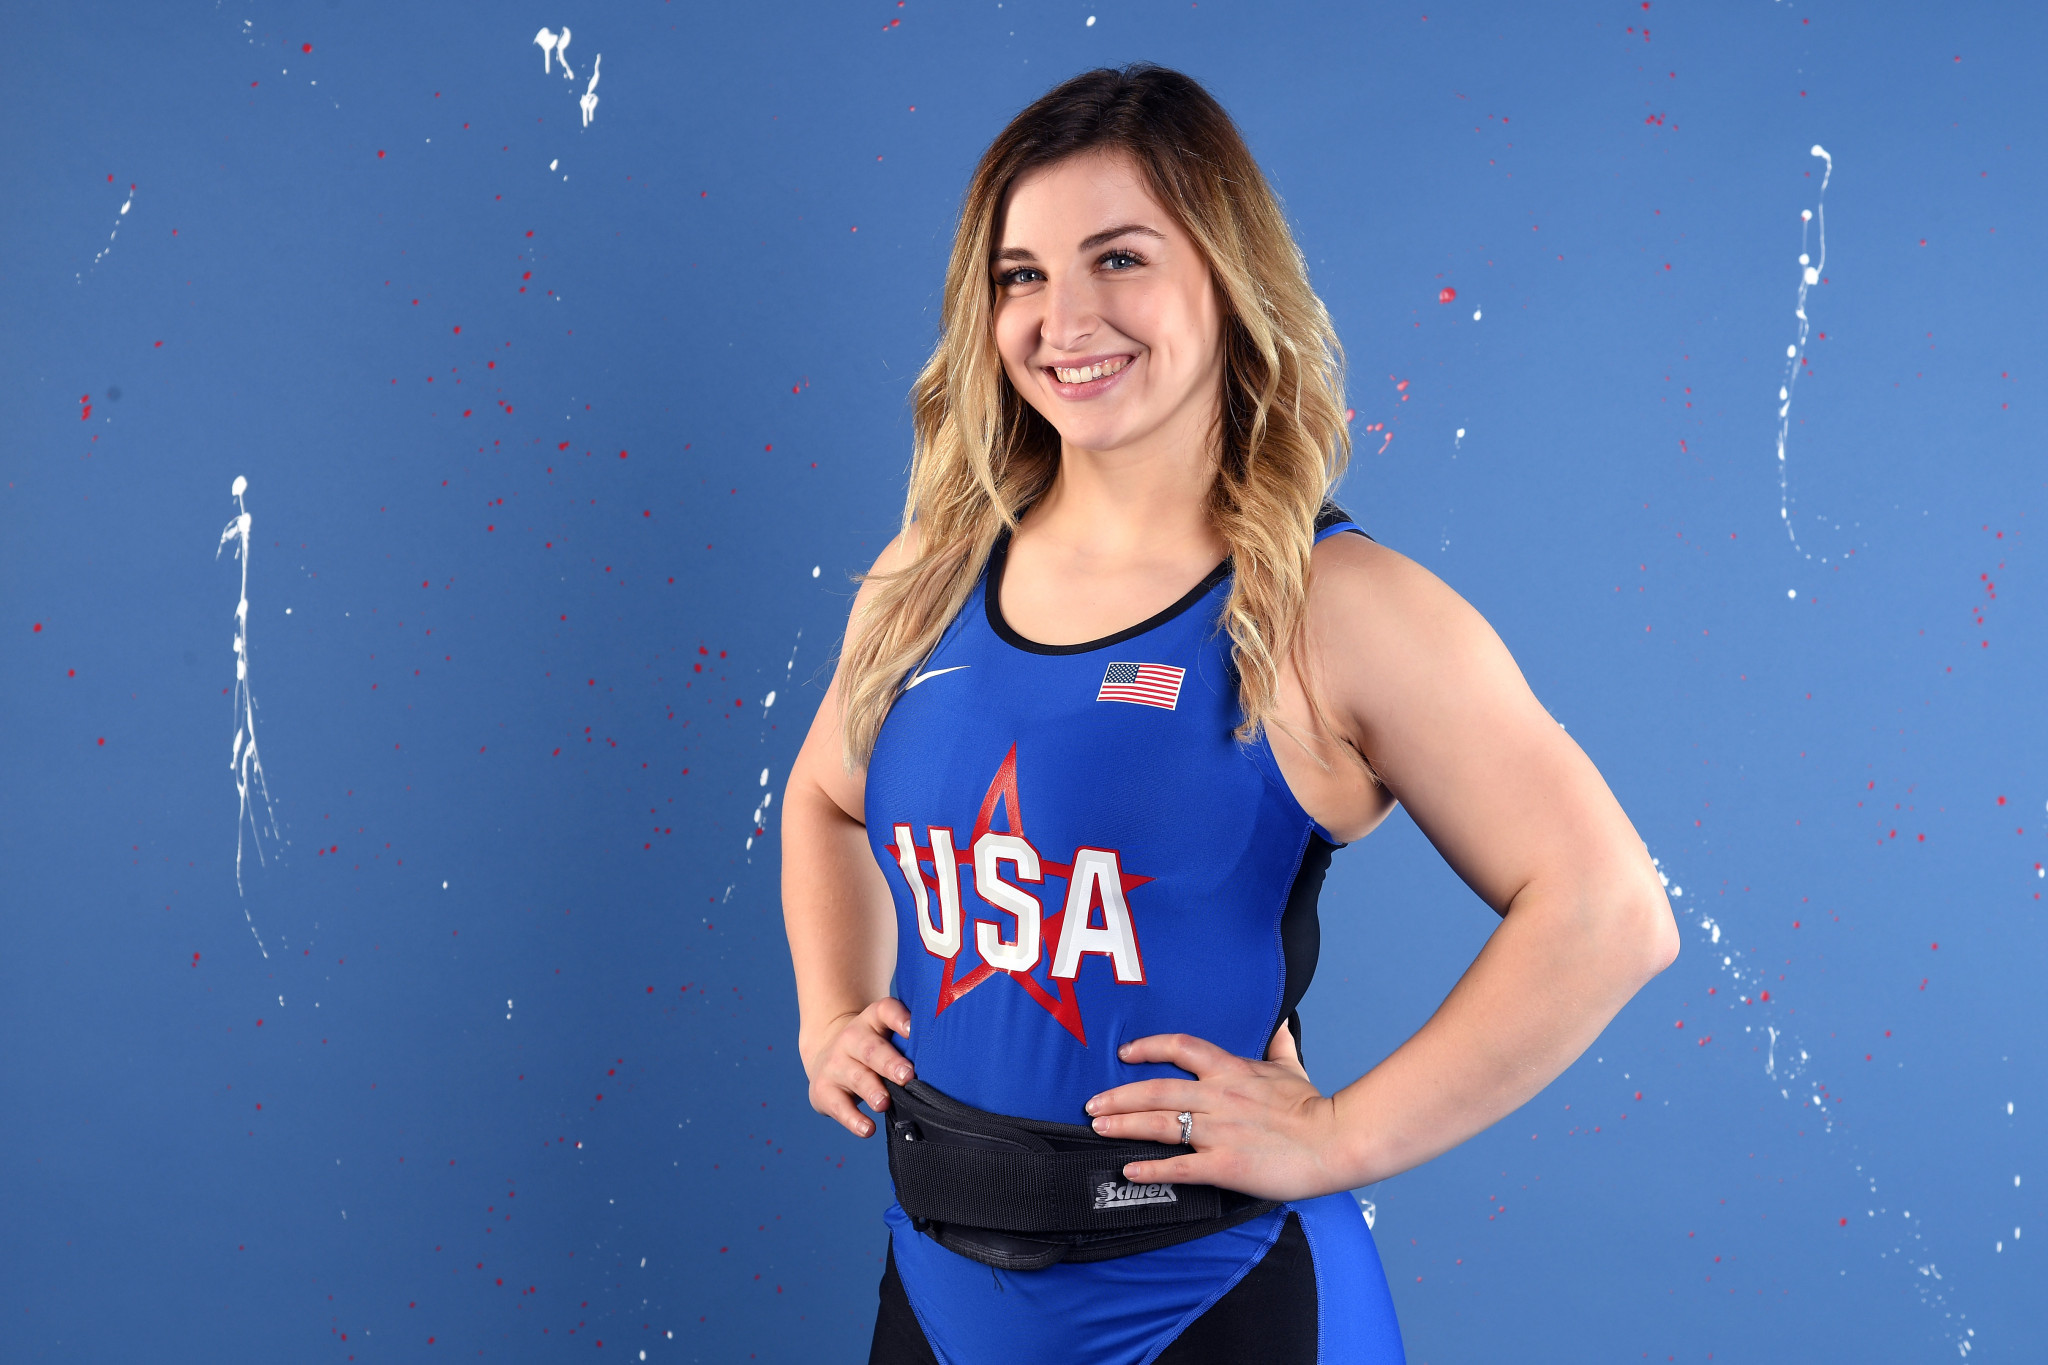 Kate Nye is among the American weightlifters whose medal chances are increased by North Korea skipping the Olympics